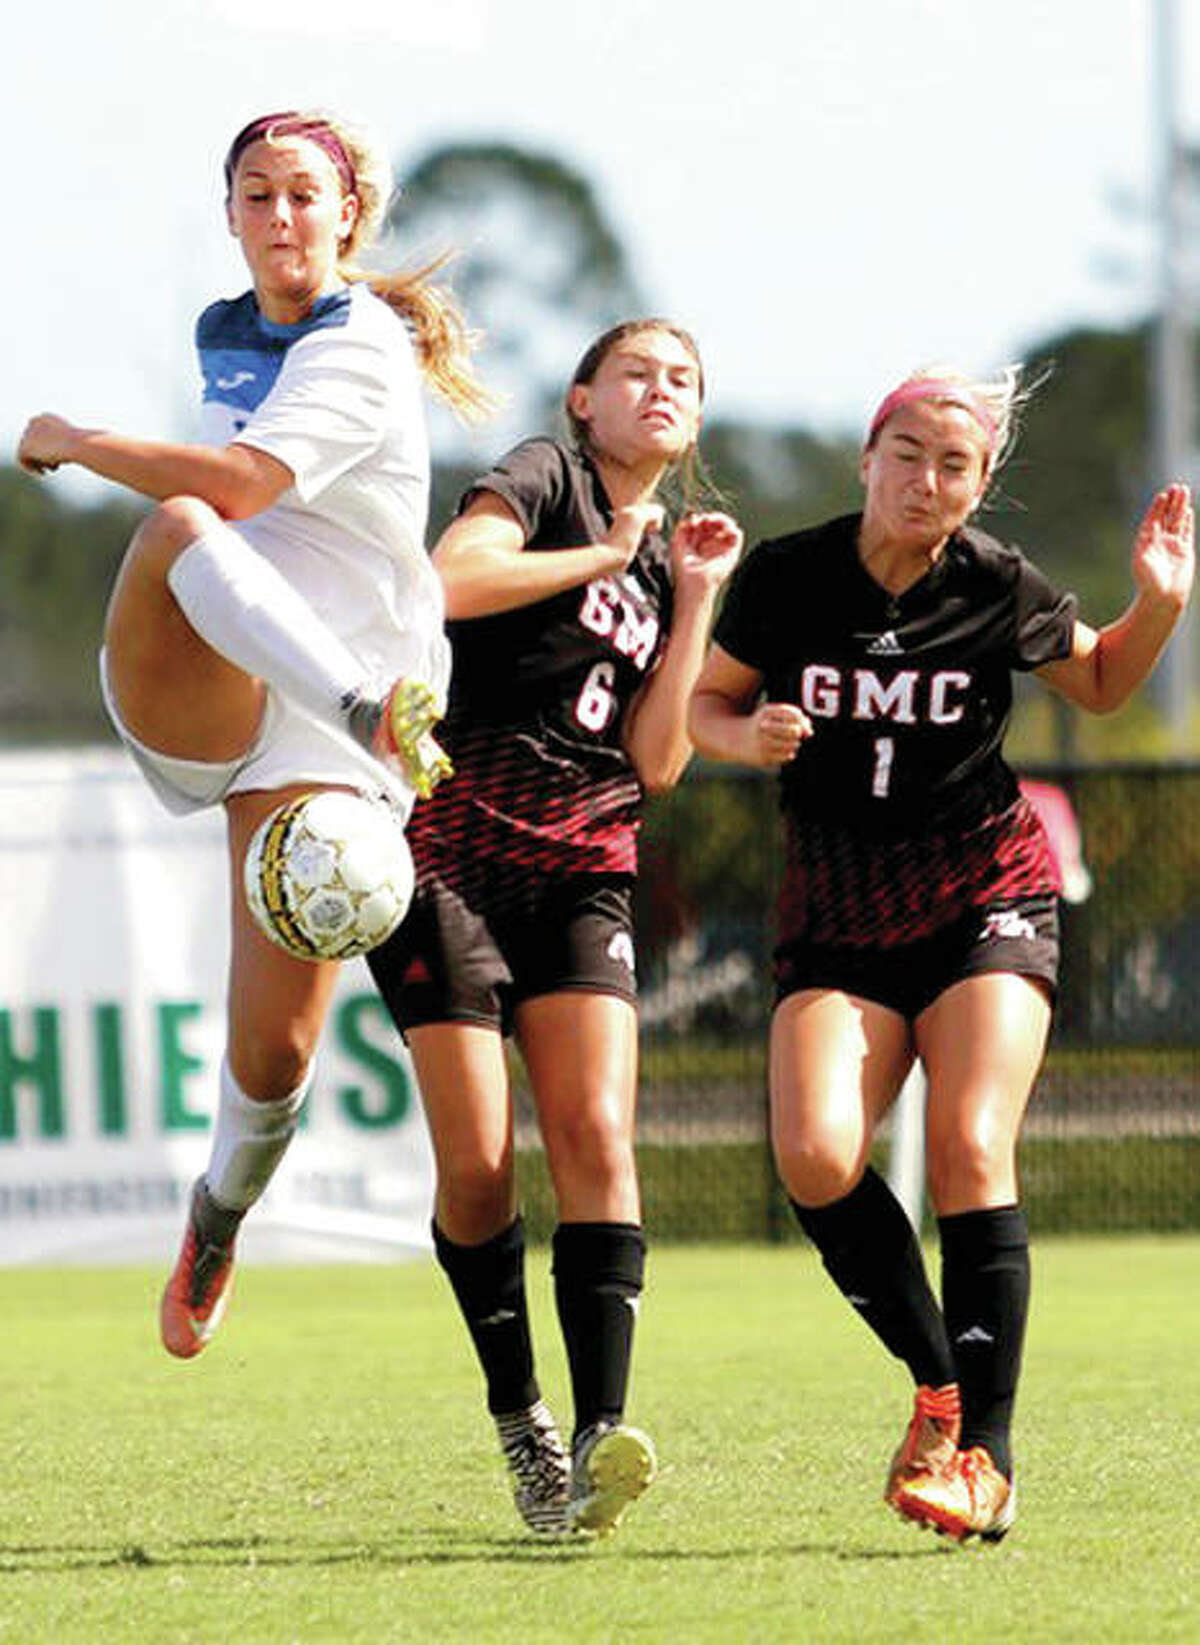 LCCC's Kassidy Louvall, left, gets off a shot in Tuesday's game against Georgia Military College at the NJCAA National Soccer Tournament in Melbourne, Fla. At right at GMC's Alison Rugel (6) and Ellery Duck (1). Louvall scored two goals, including the golden-goal winner, in the Trailblazers' 3-2 overtime win.